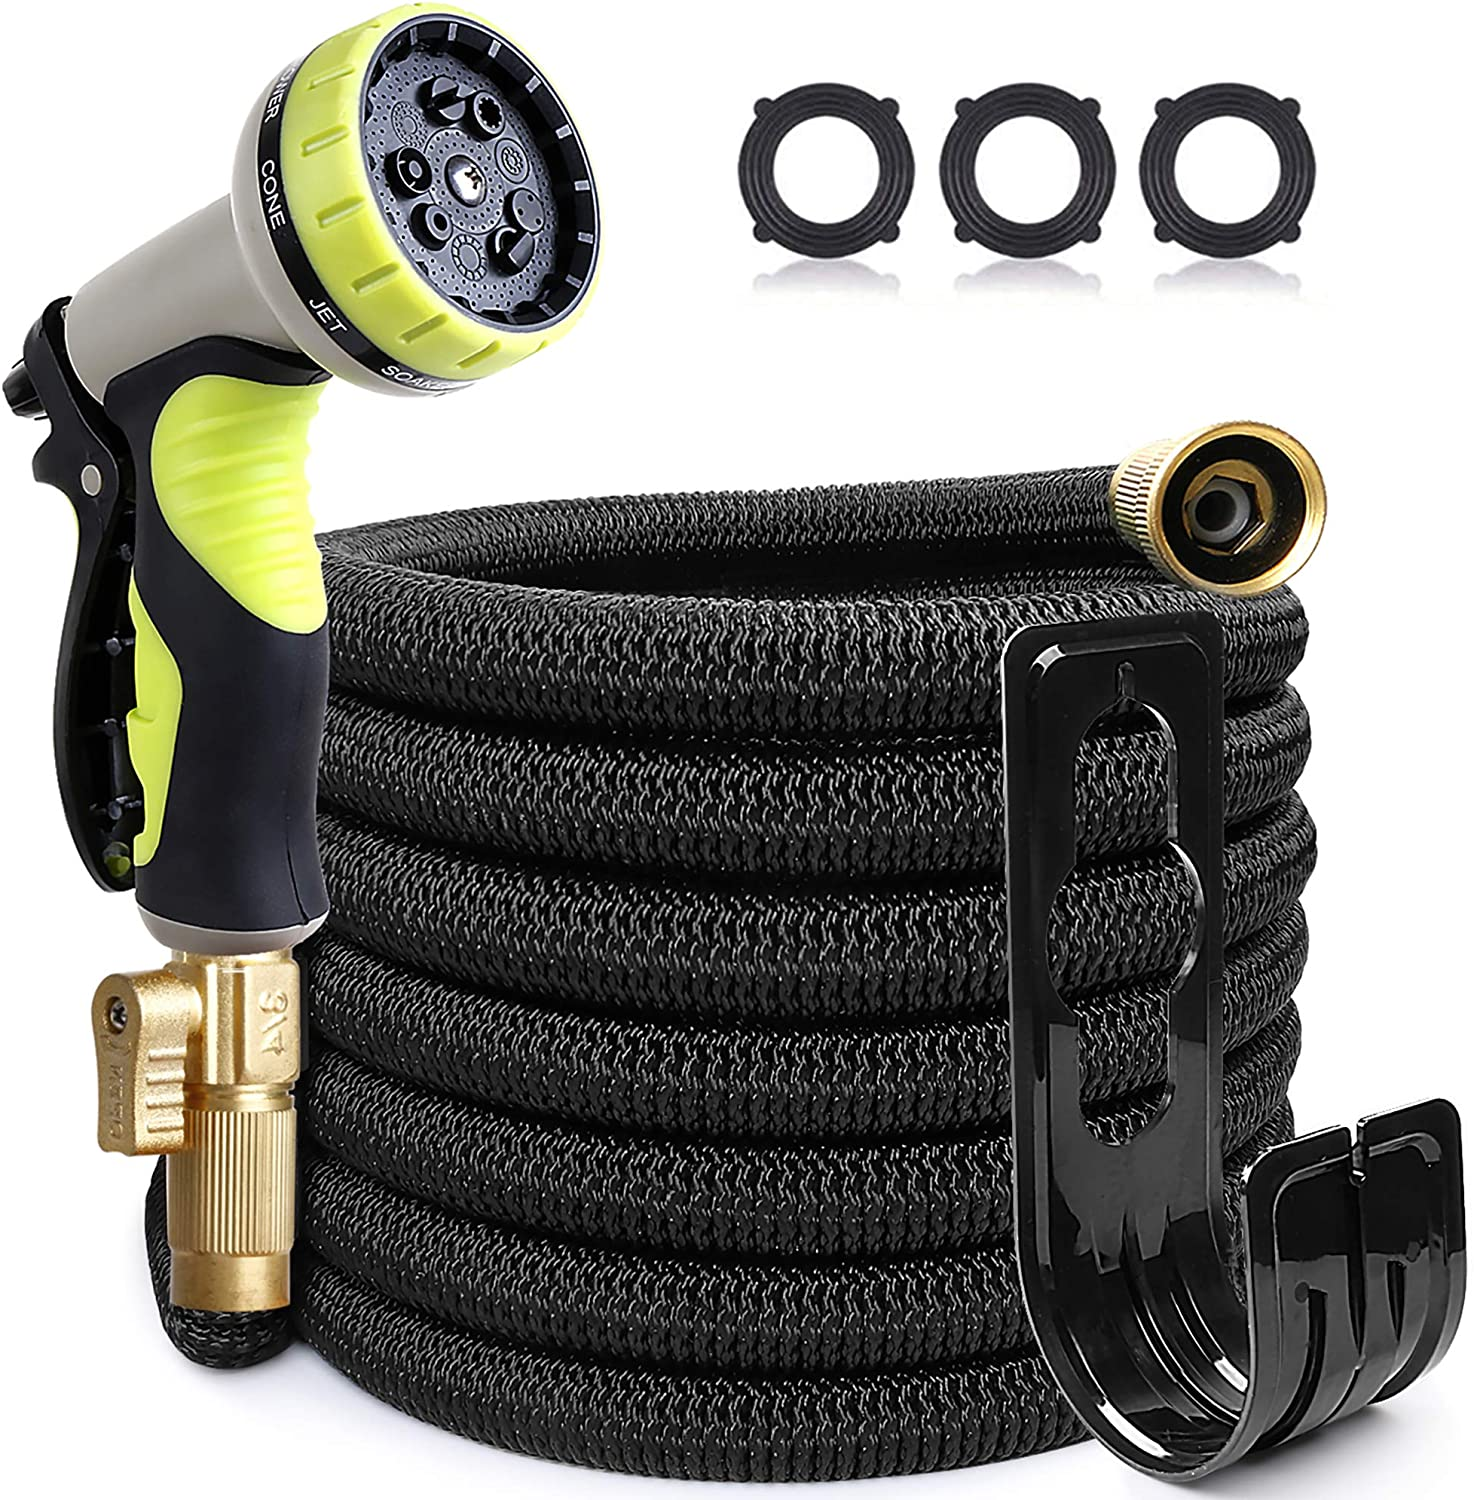 EOOIO 25FT Garden Hose, Water Hose with 100% Solid Brass Valve 9 Function Hose Nozzle, Flexible Outdoor Hose Lightweight Gardening Yard Hoses